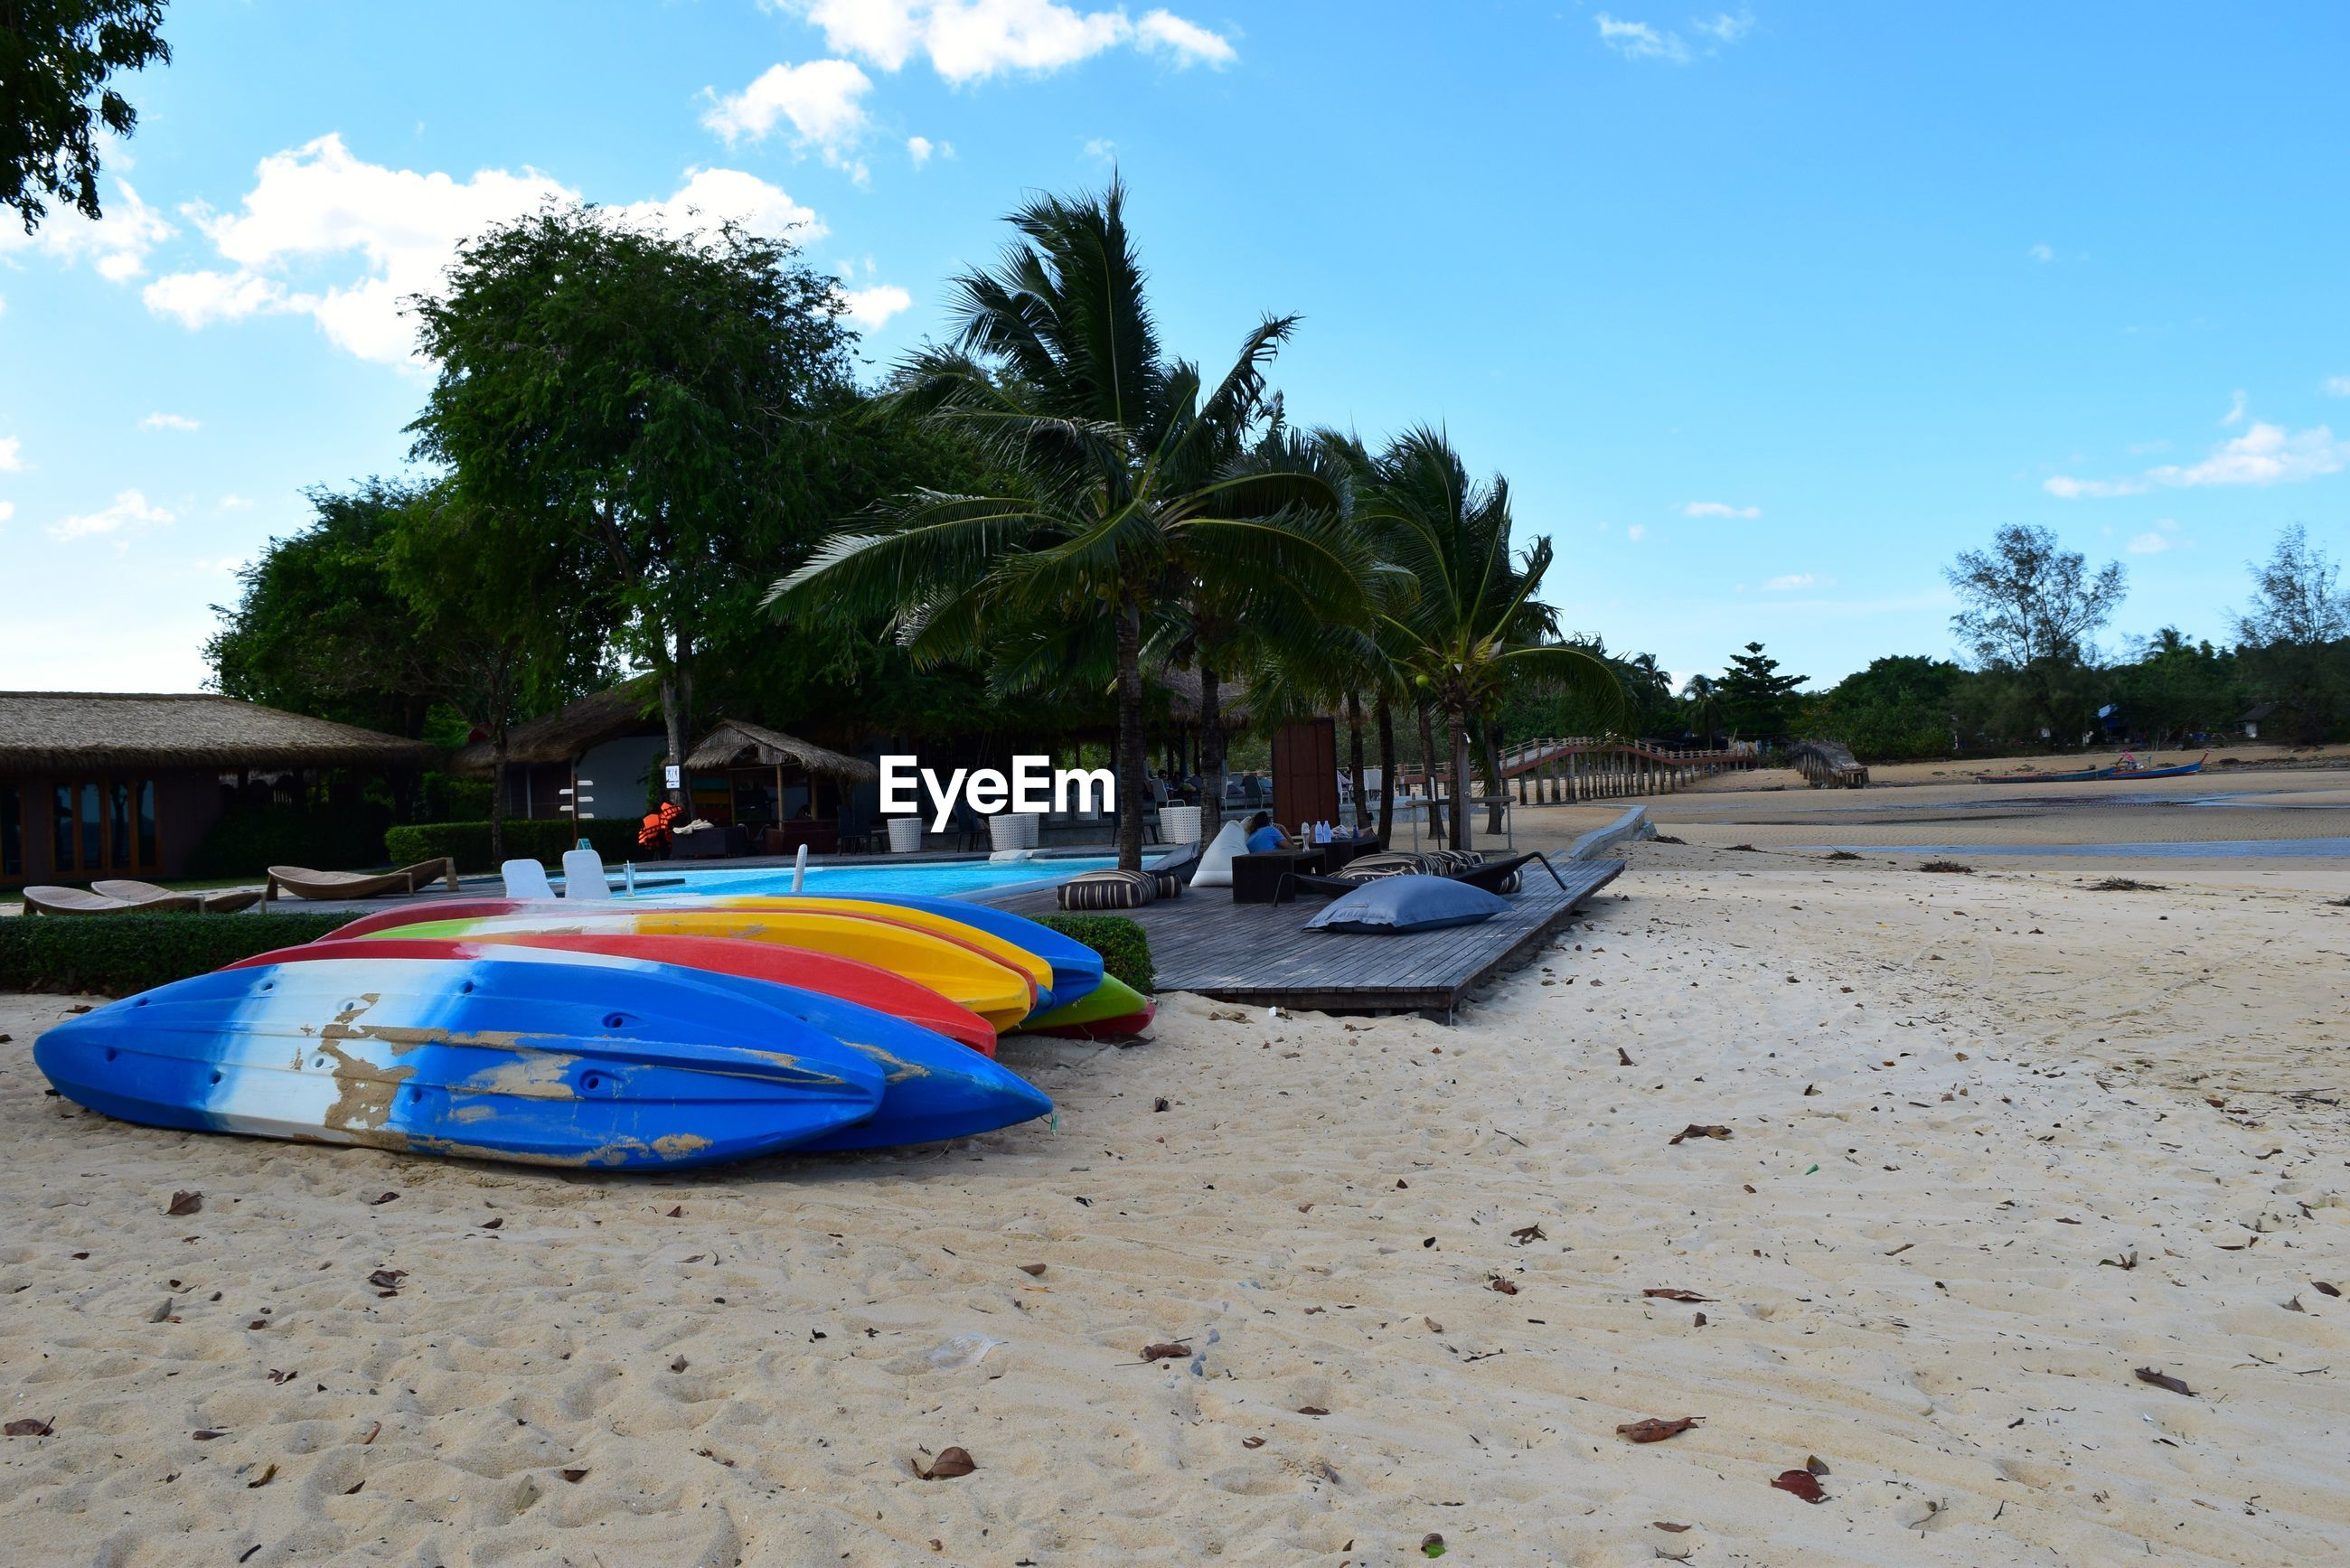 tree, beach, sand, sky, blue, transportation, palm tree, moored, shore, water, mode of transport, nautical vessel, tranquility, sunlight, incidental people, boat, day, nature, cloud, cloud - sky